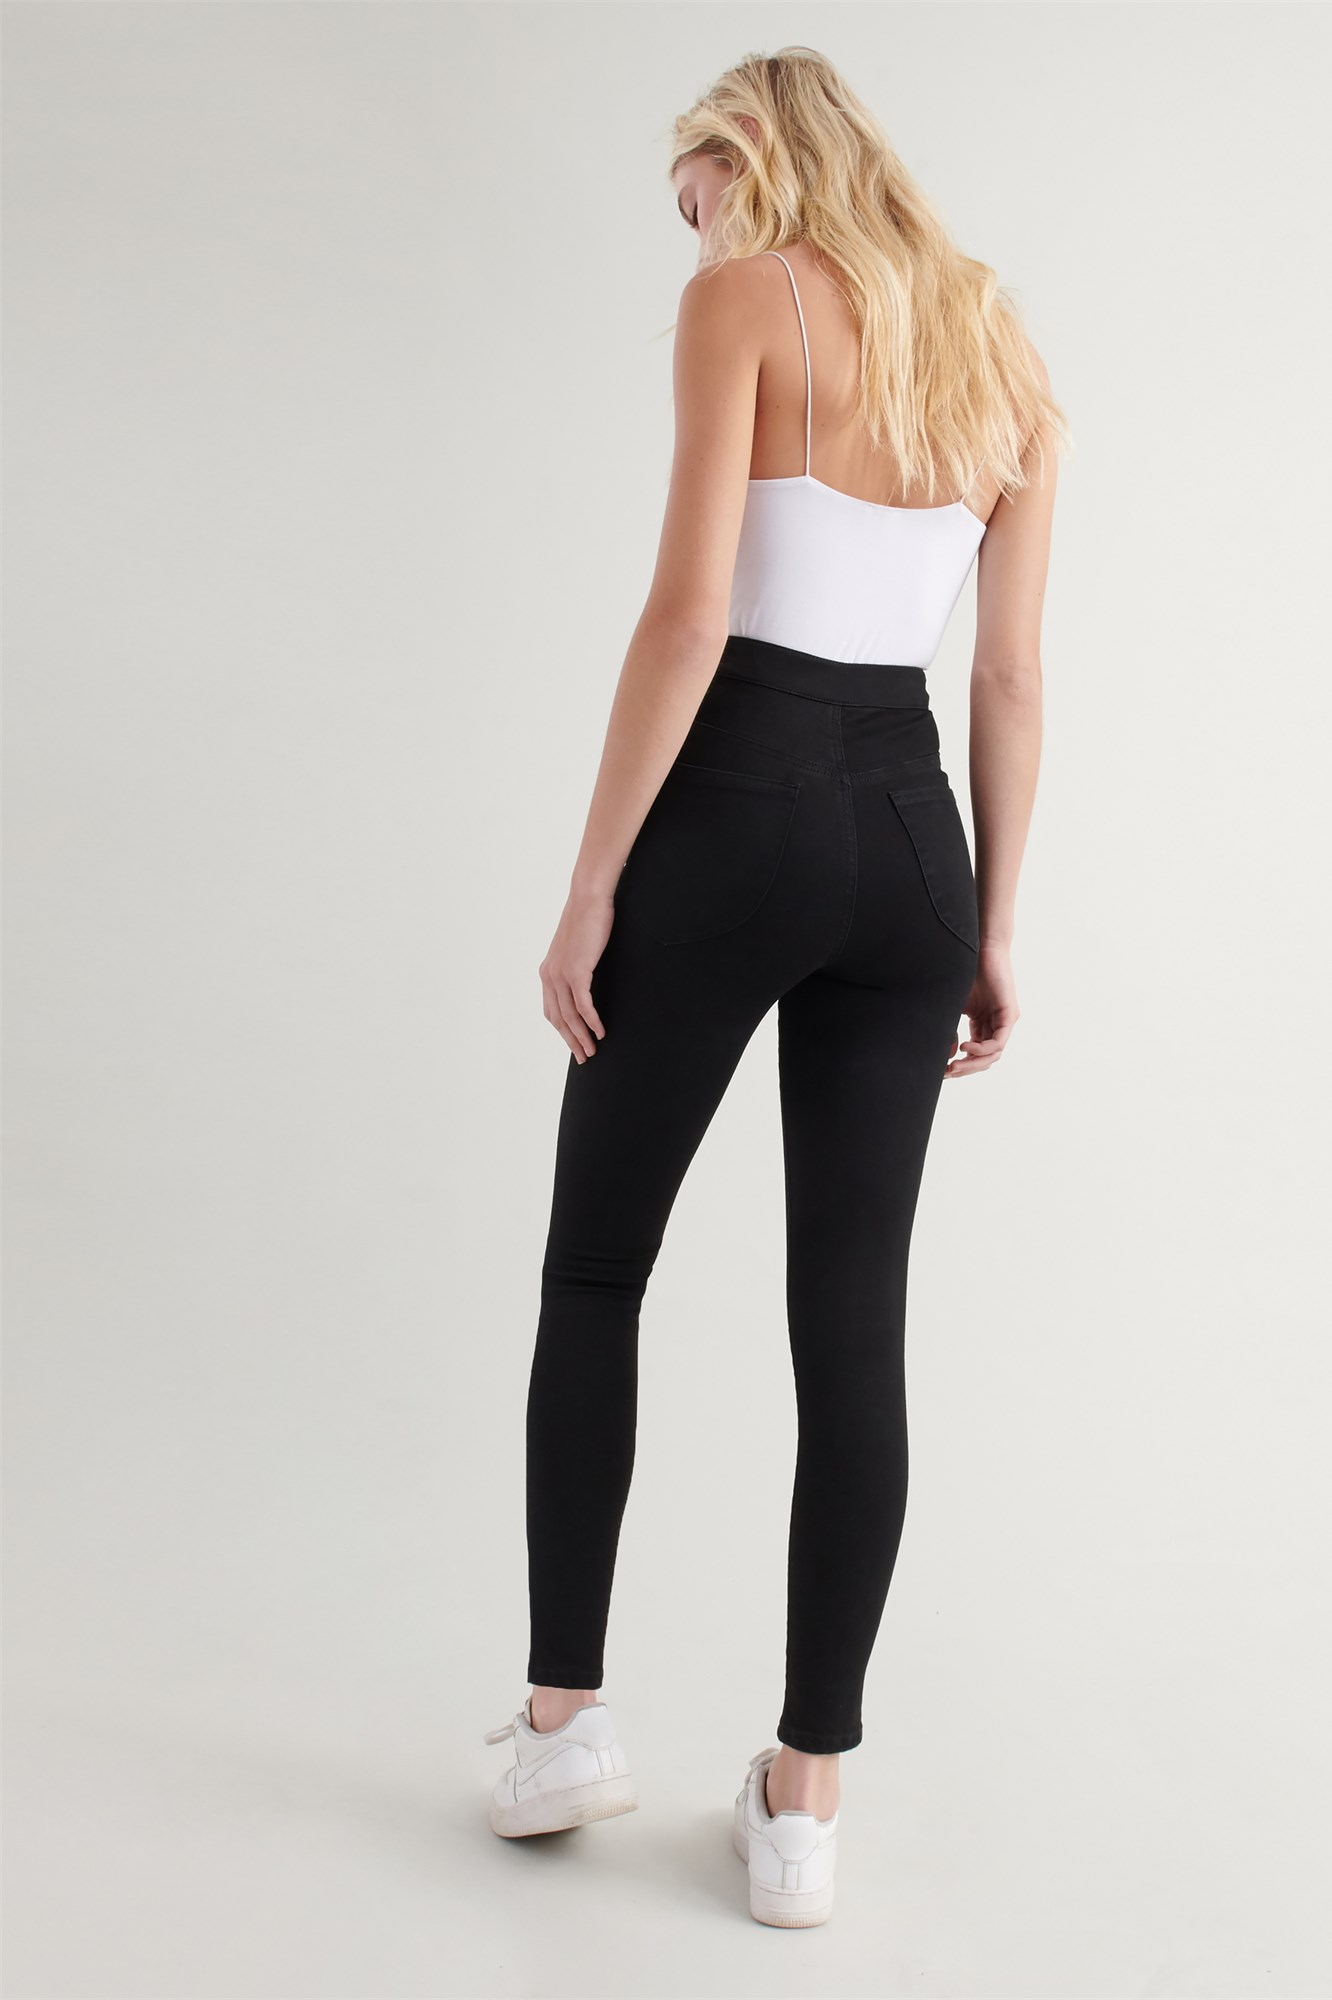 Image 5 of Extreme High Rise Jean - Black